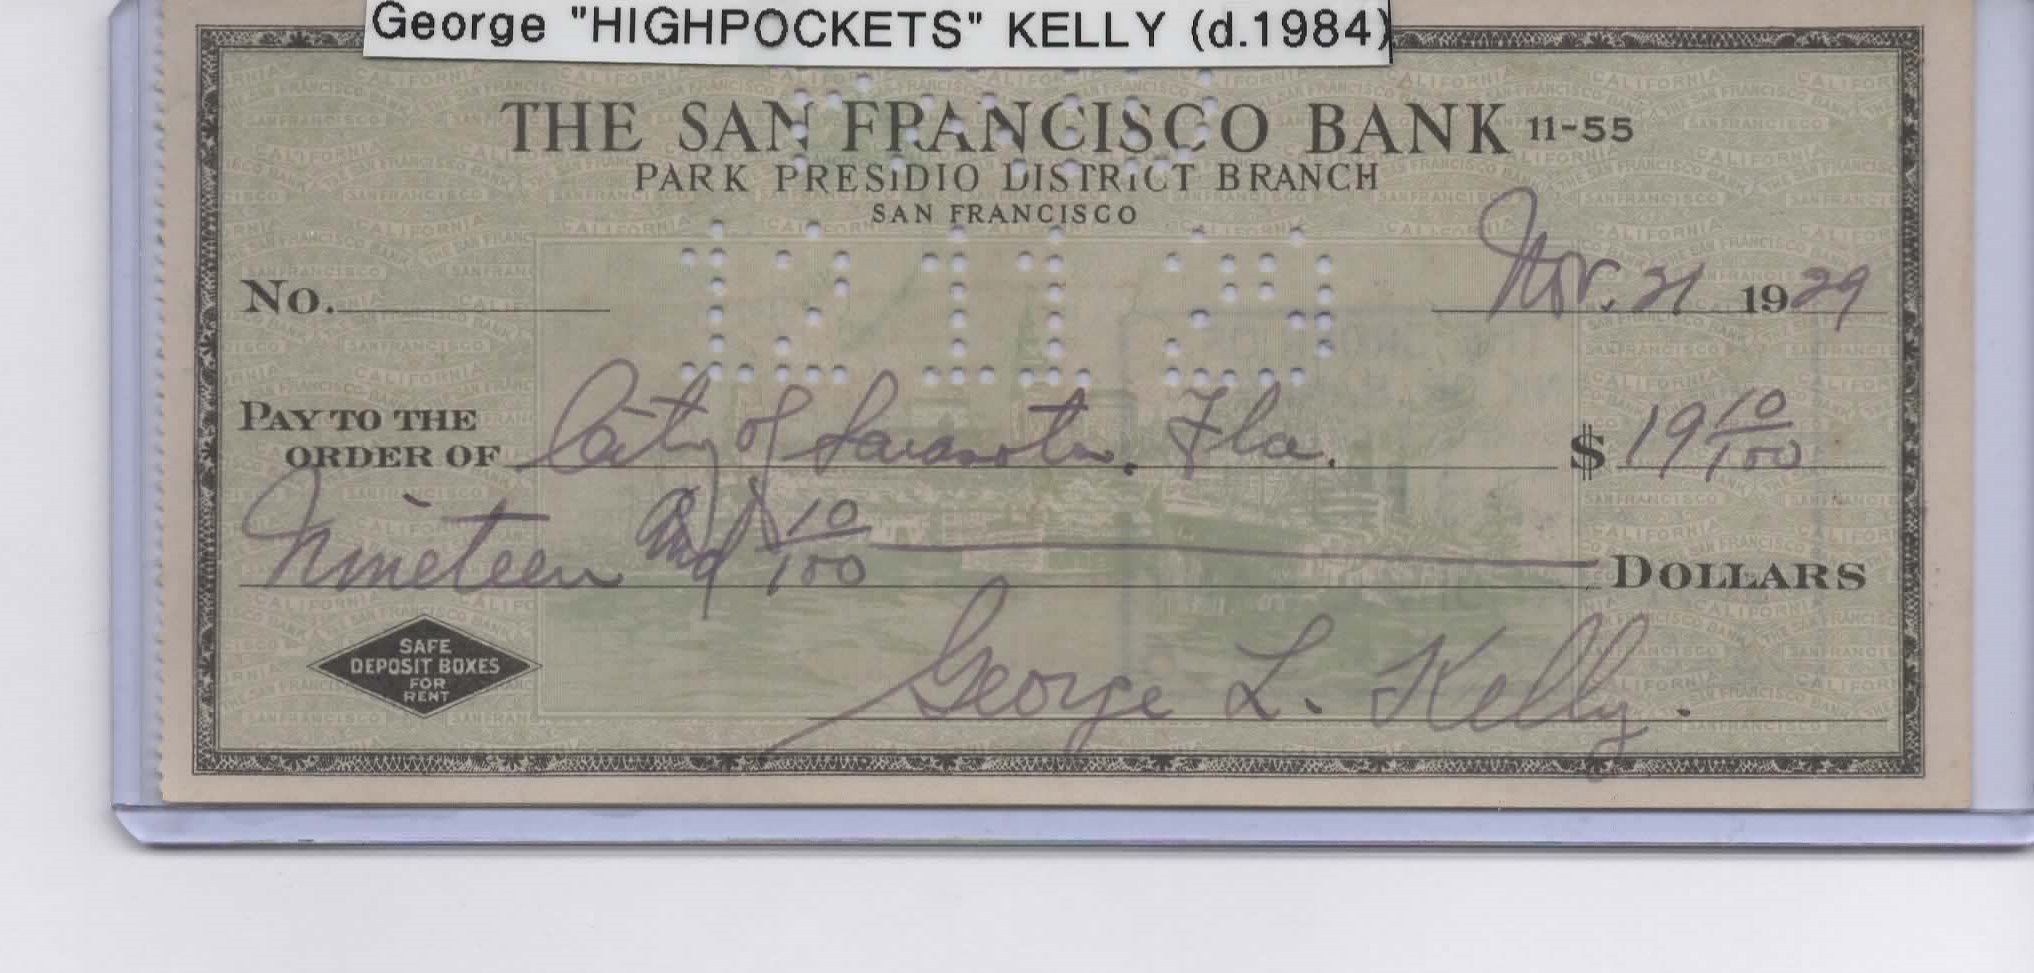 GEORGE KELLY SIGNED PERSONAL CHECK NEW YORK GIANTS HIGH POCKETS